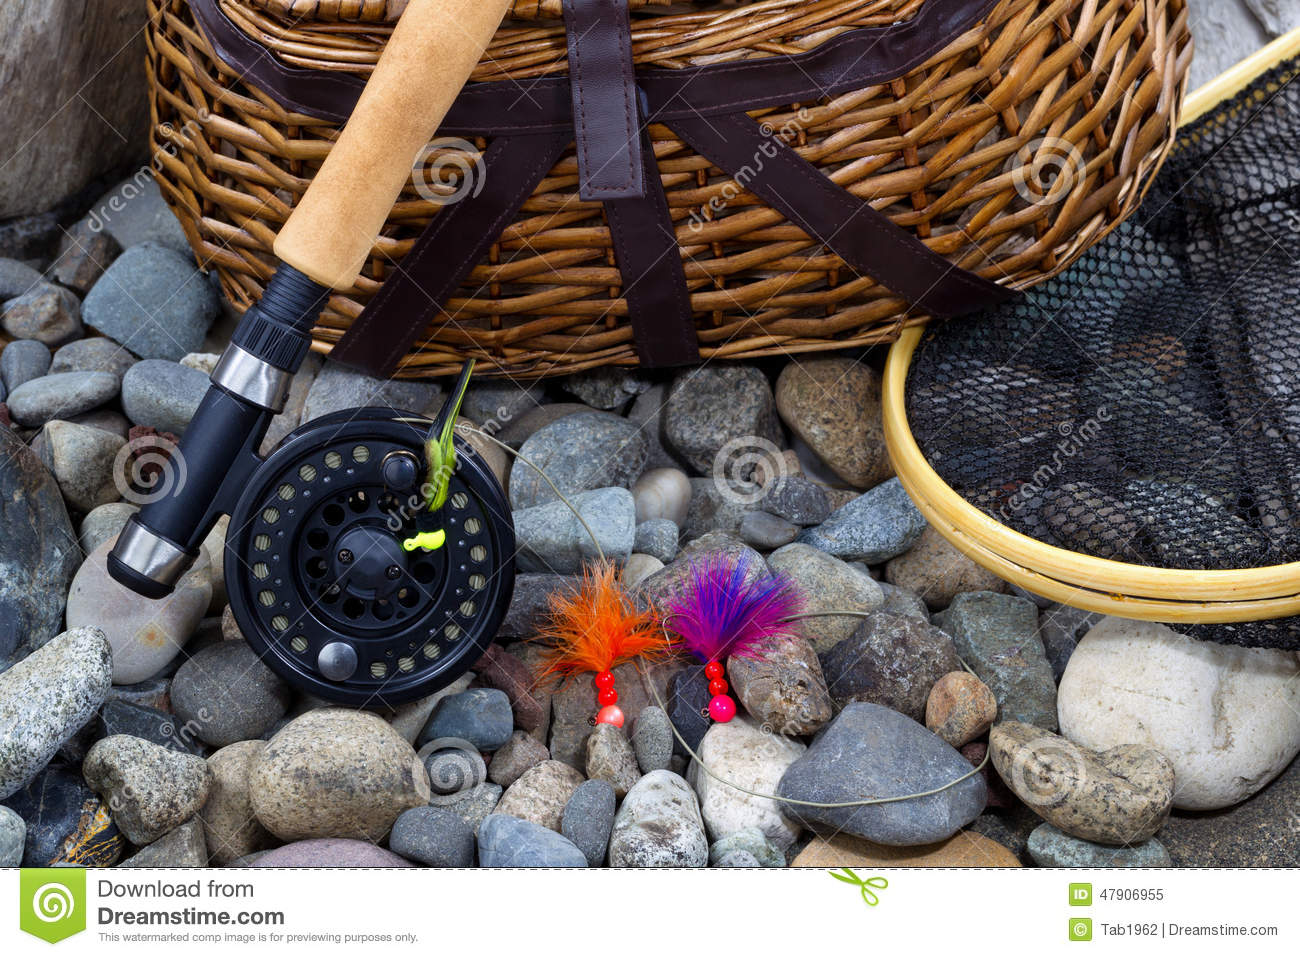 Fishing Equipment On River Bed Stones Stock Image - Image of river